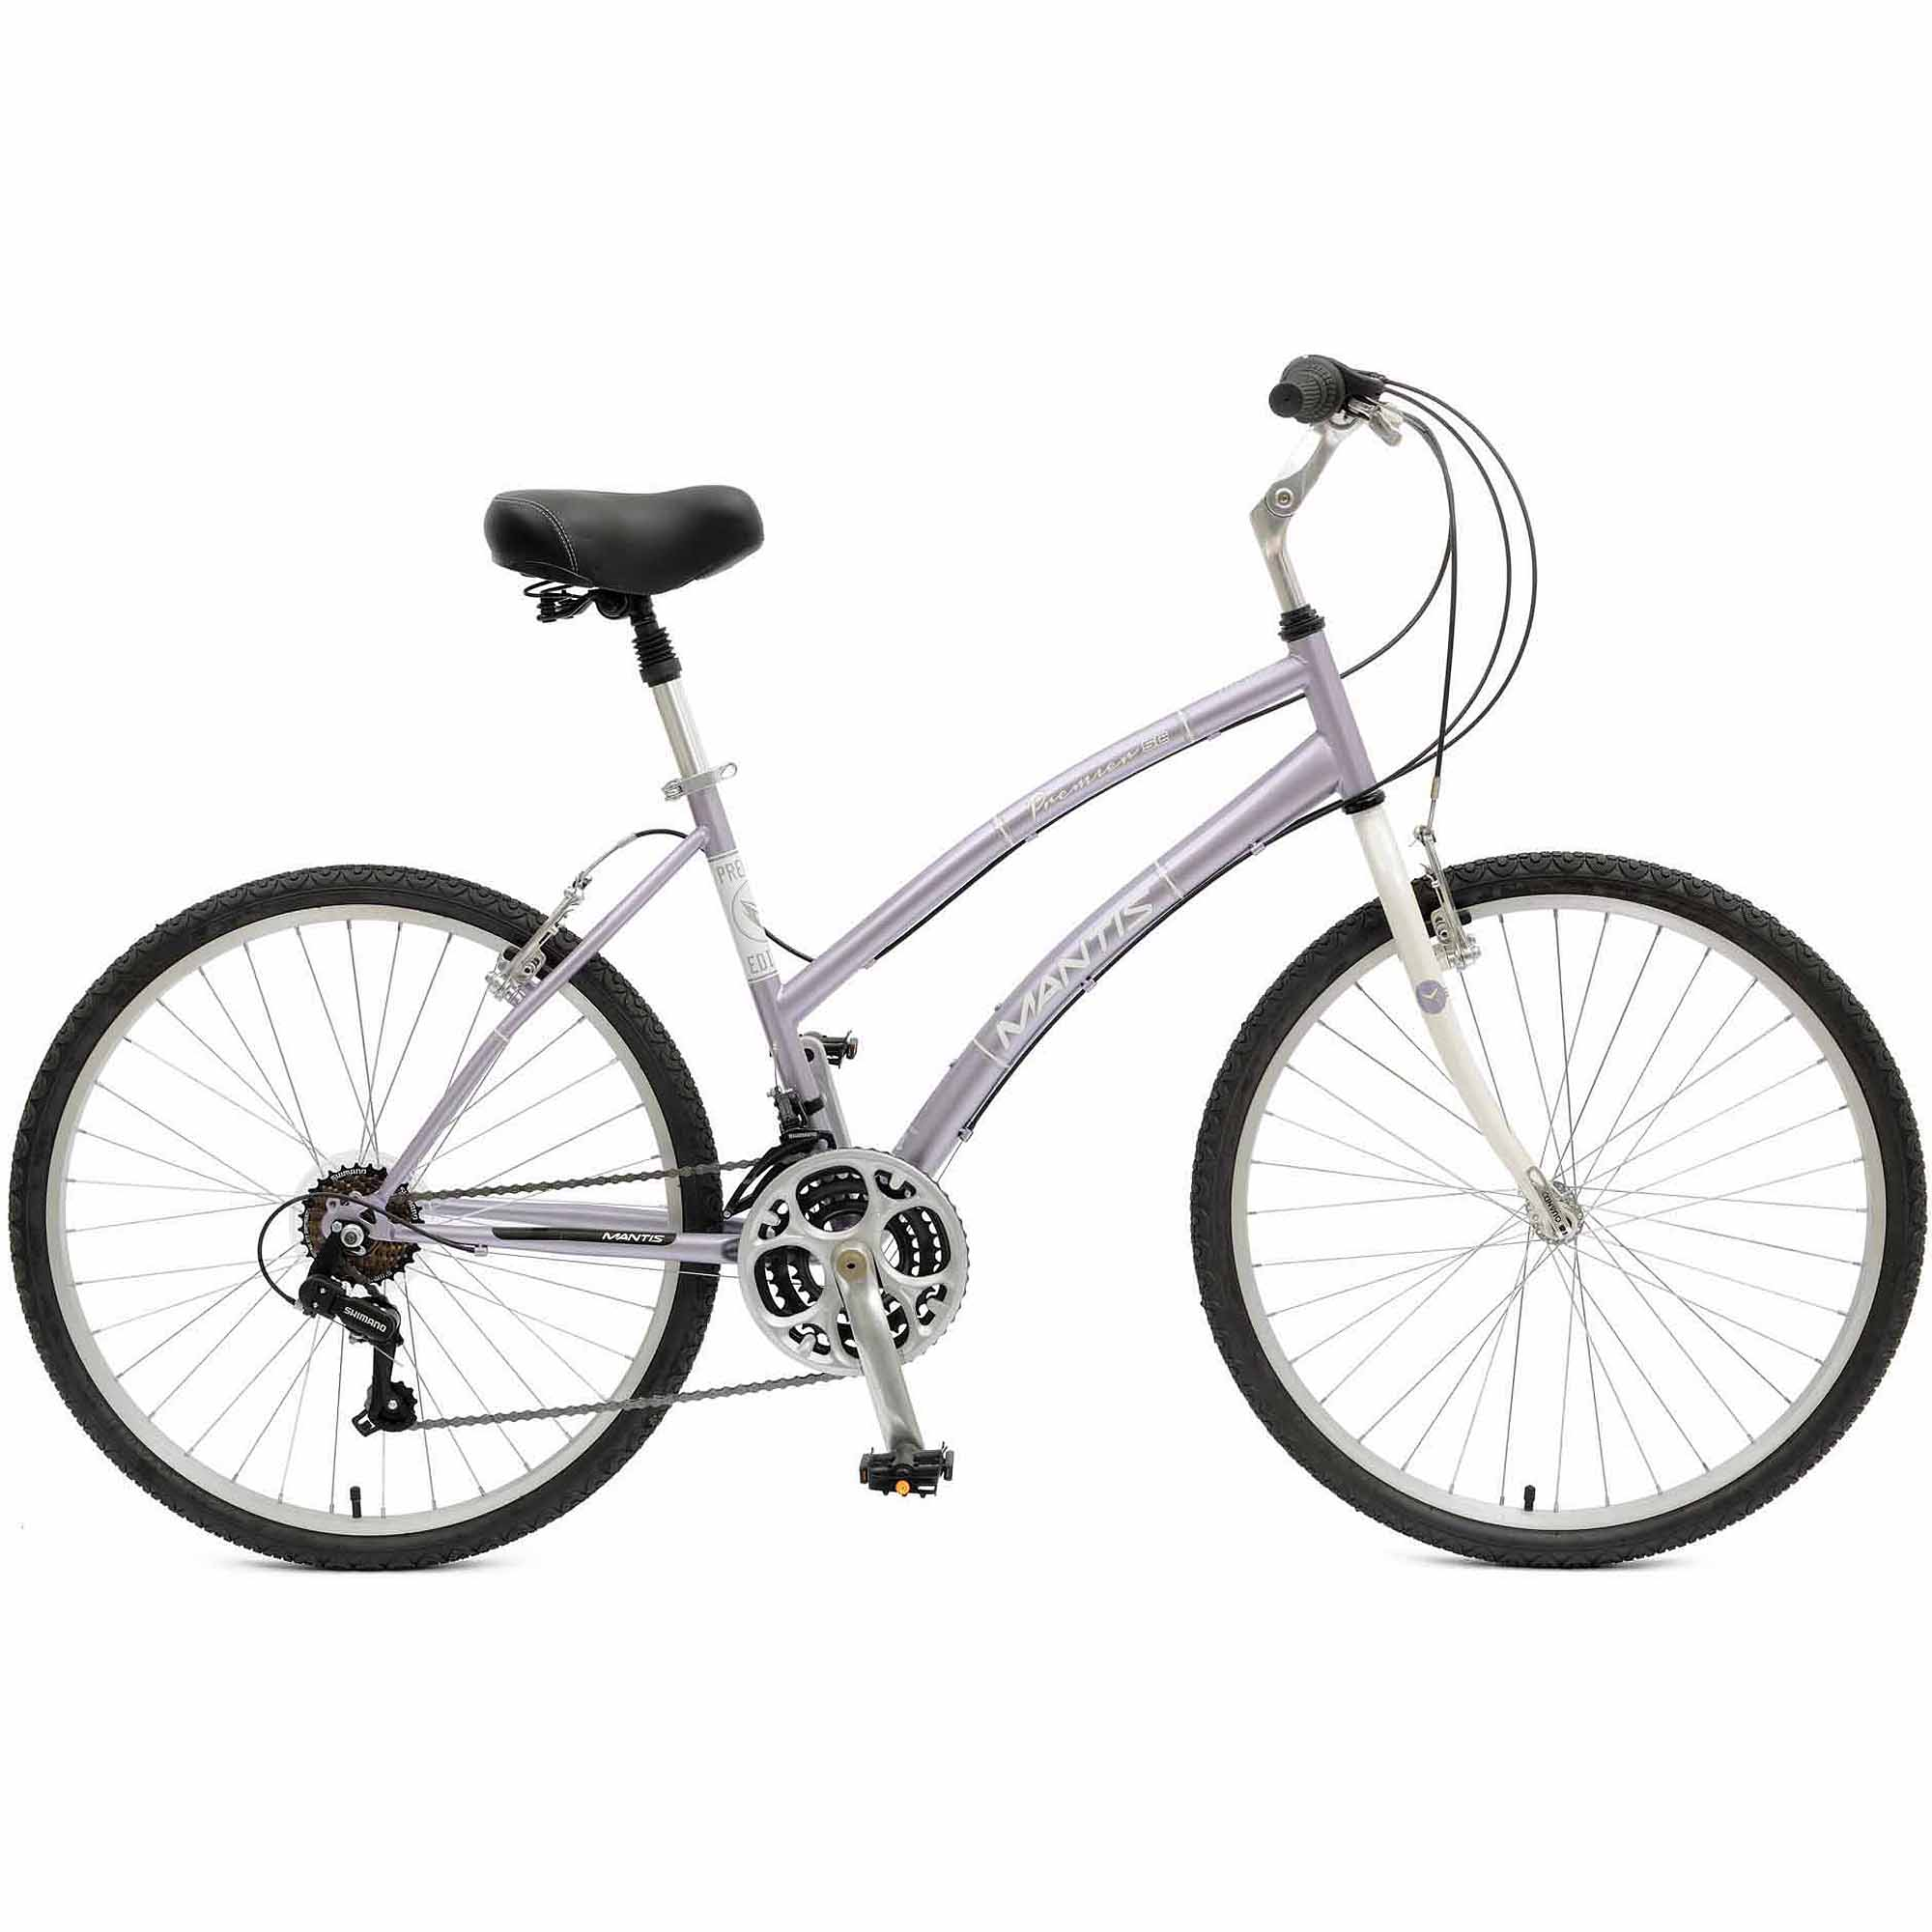 Mantis Premier 726L Comfort Bicycle